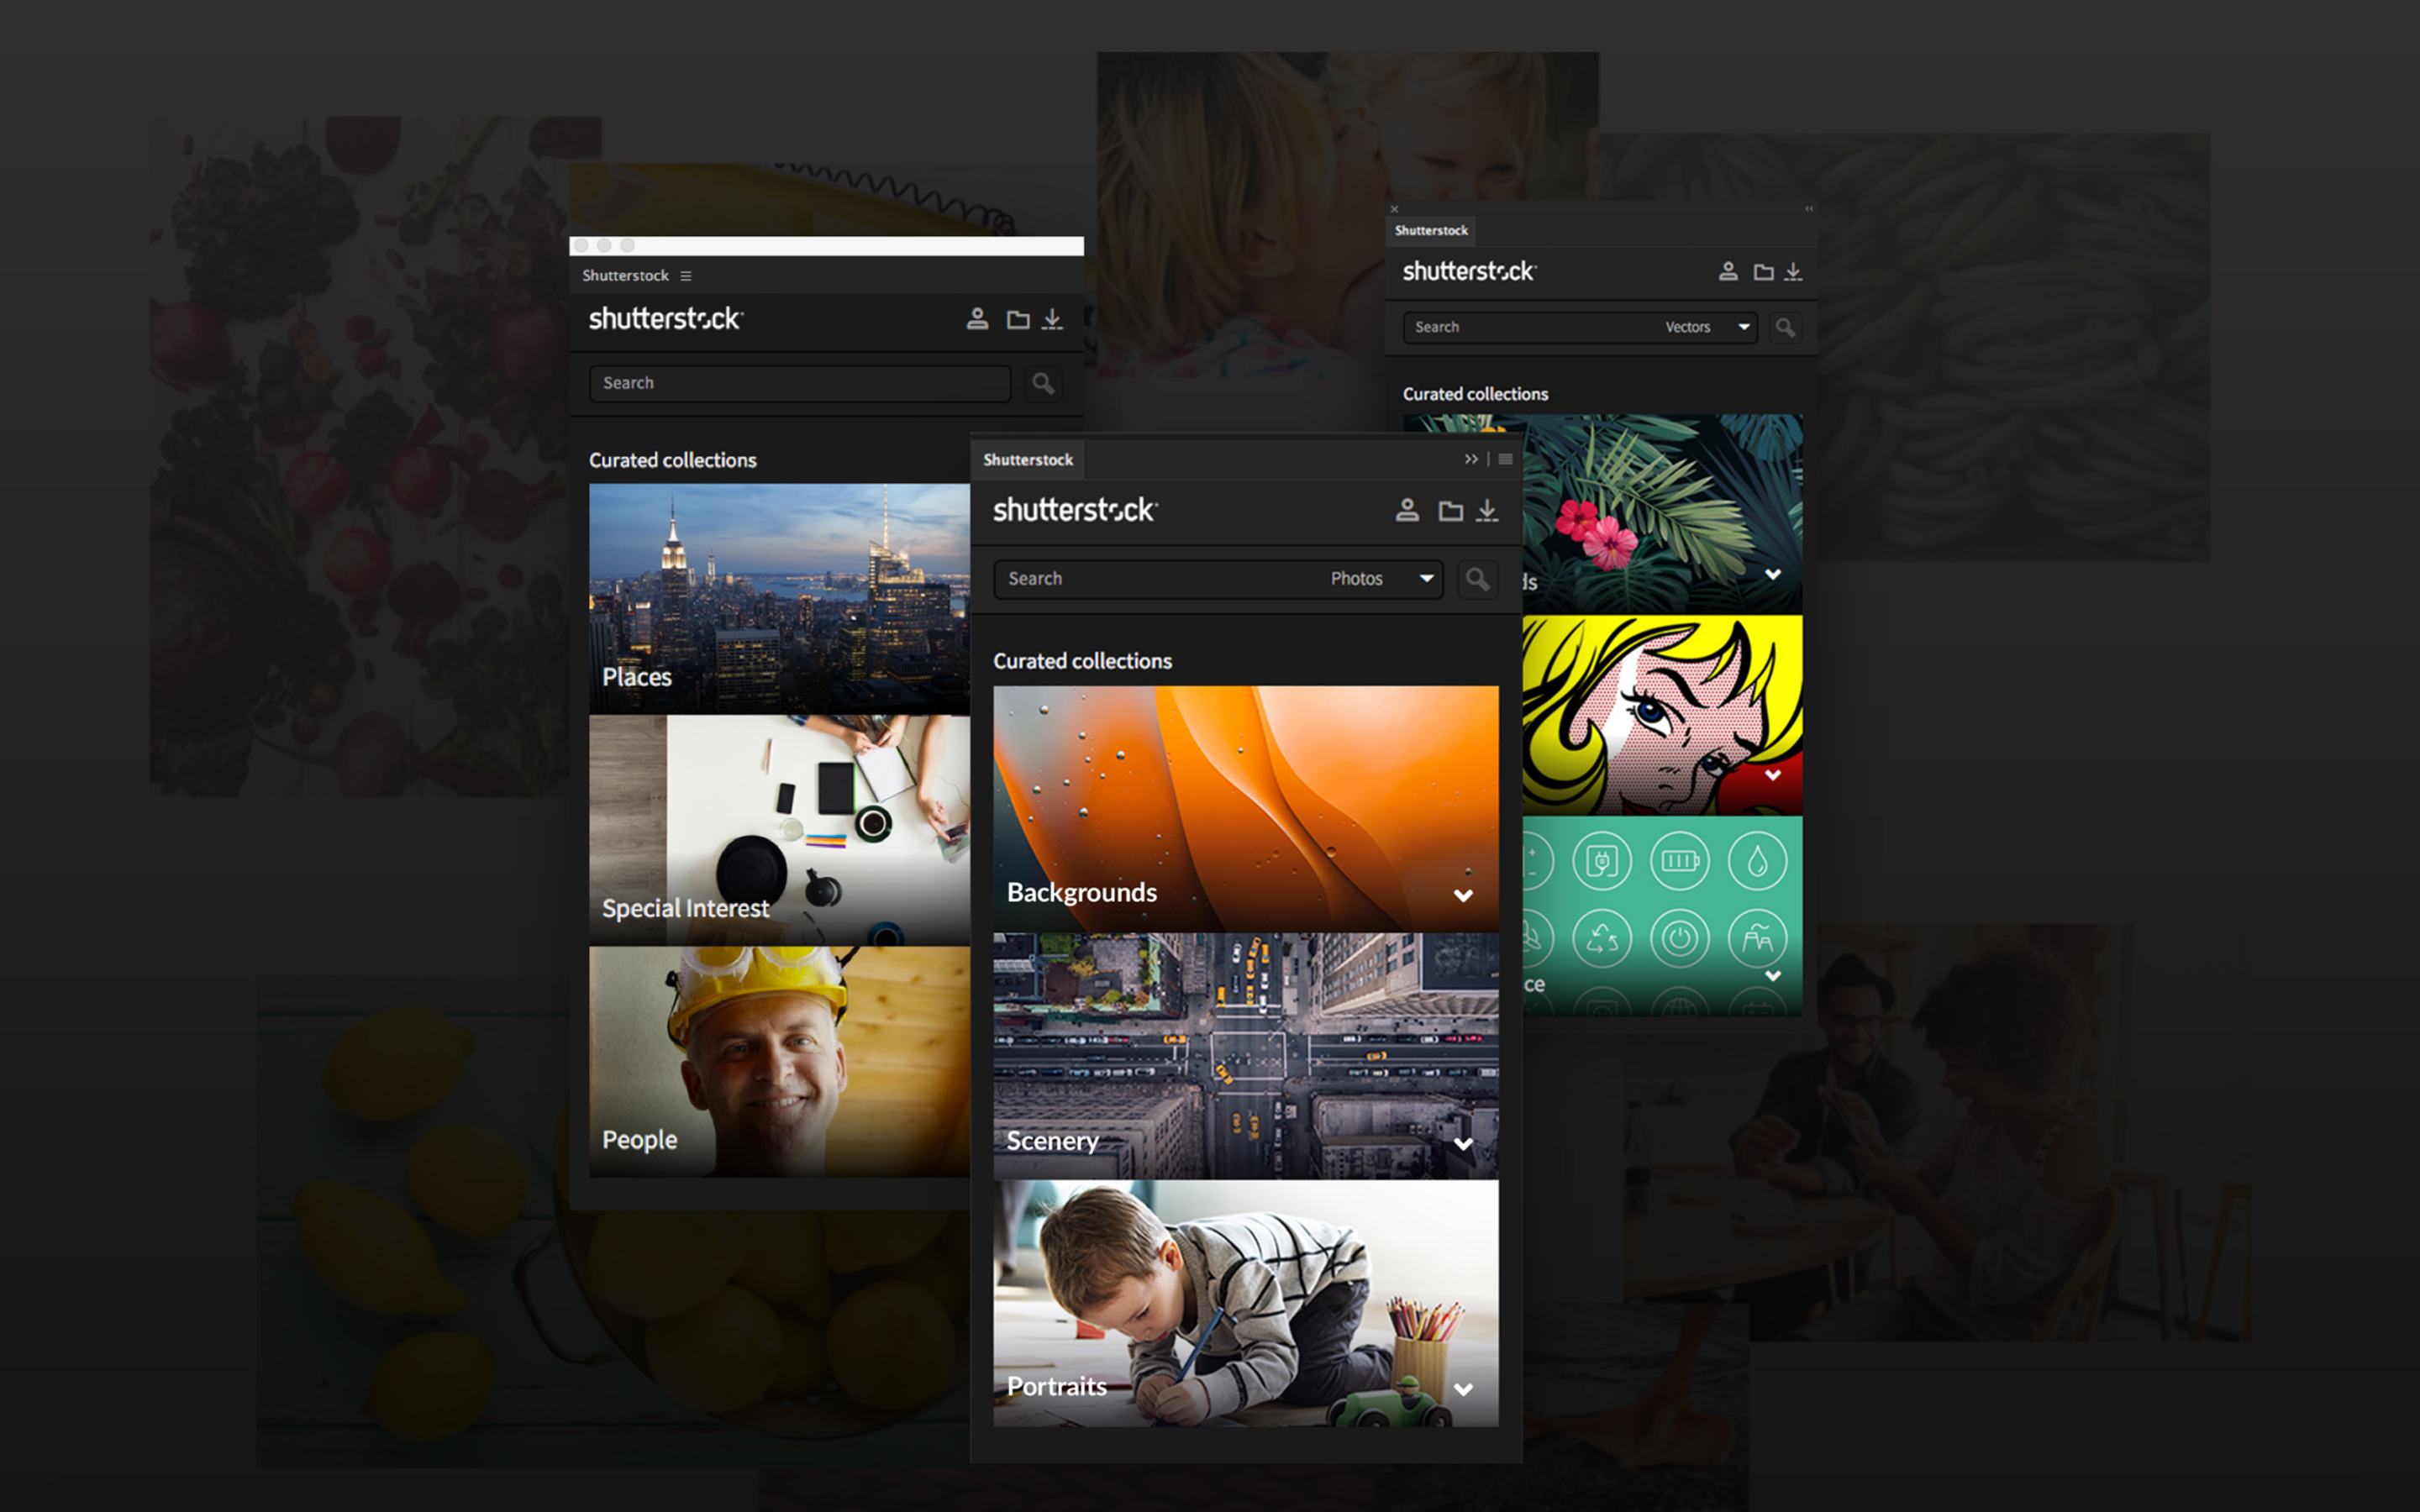 Download The New Shutterstock Plugin For The Adobe